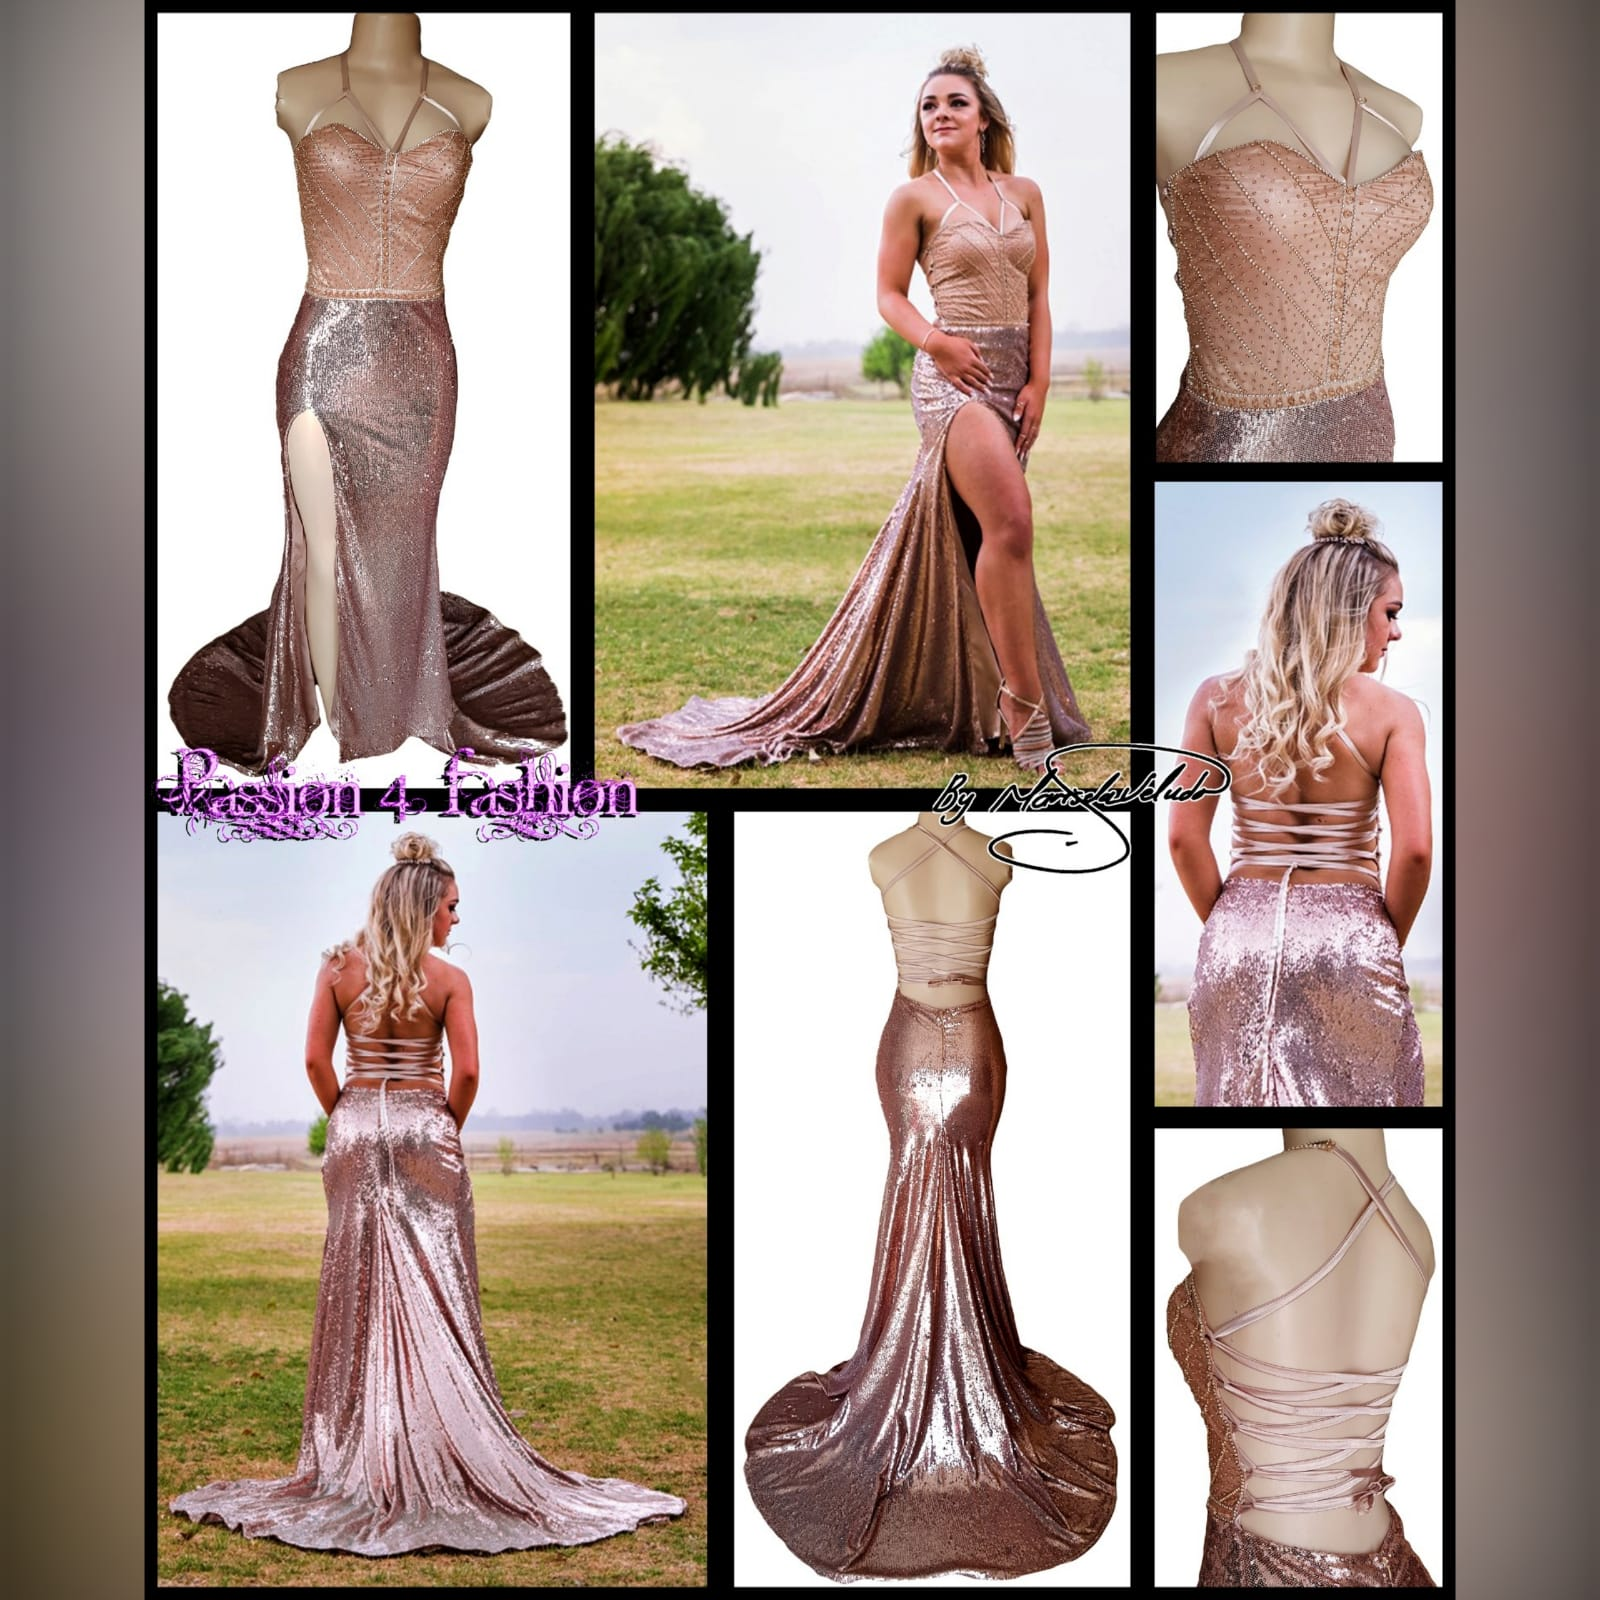 Rose gold sequins beaded matric dance dress with a beaded bodice 5 rose gold sequins beaded matric dance dress with a beaded bodice, an open lace-up back. High slit and a train.